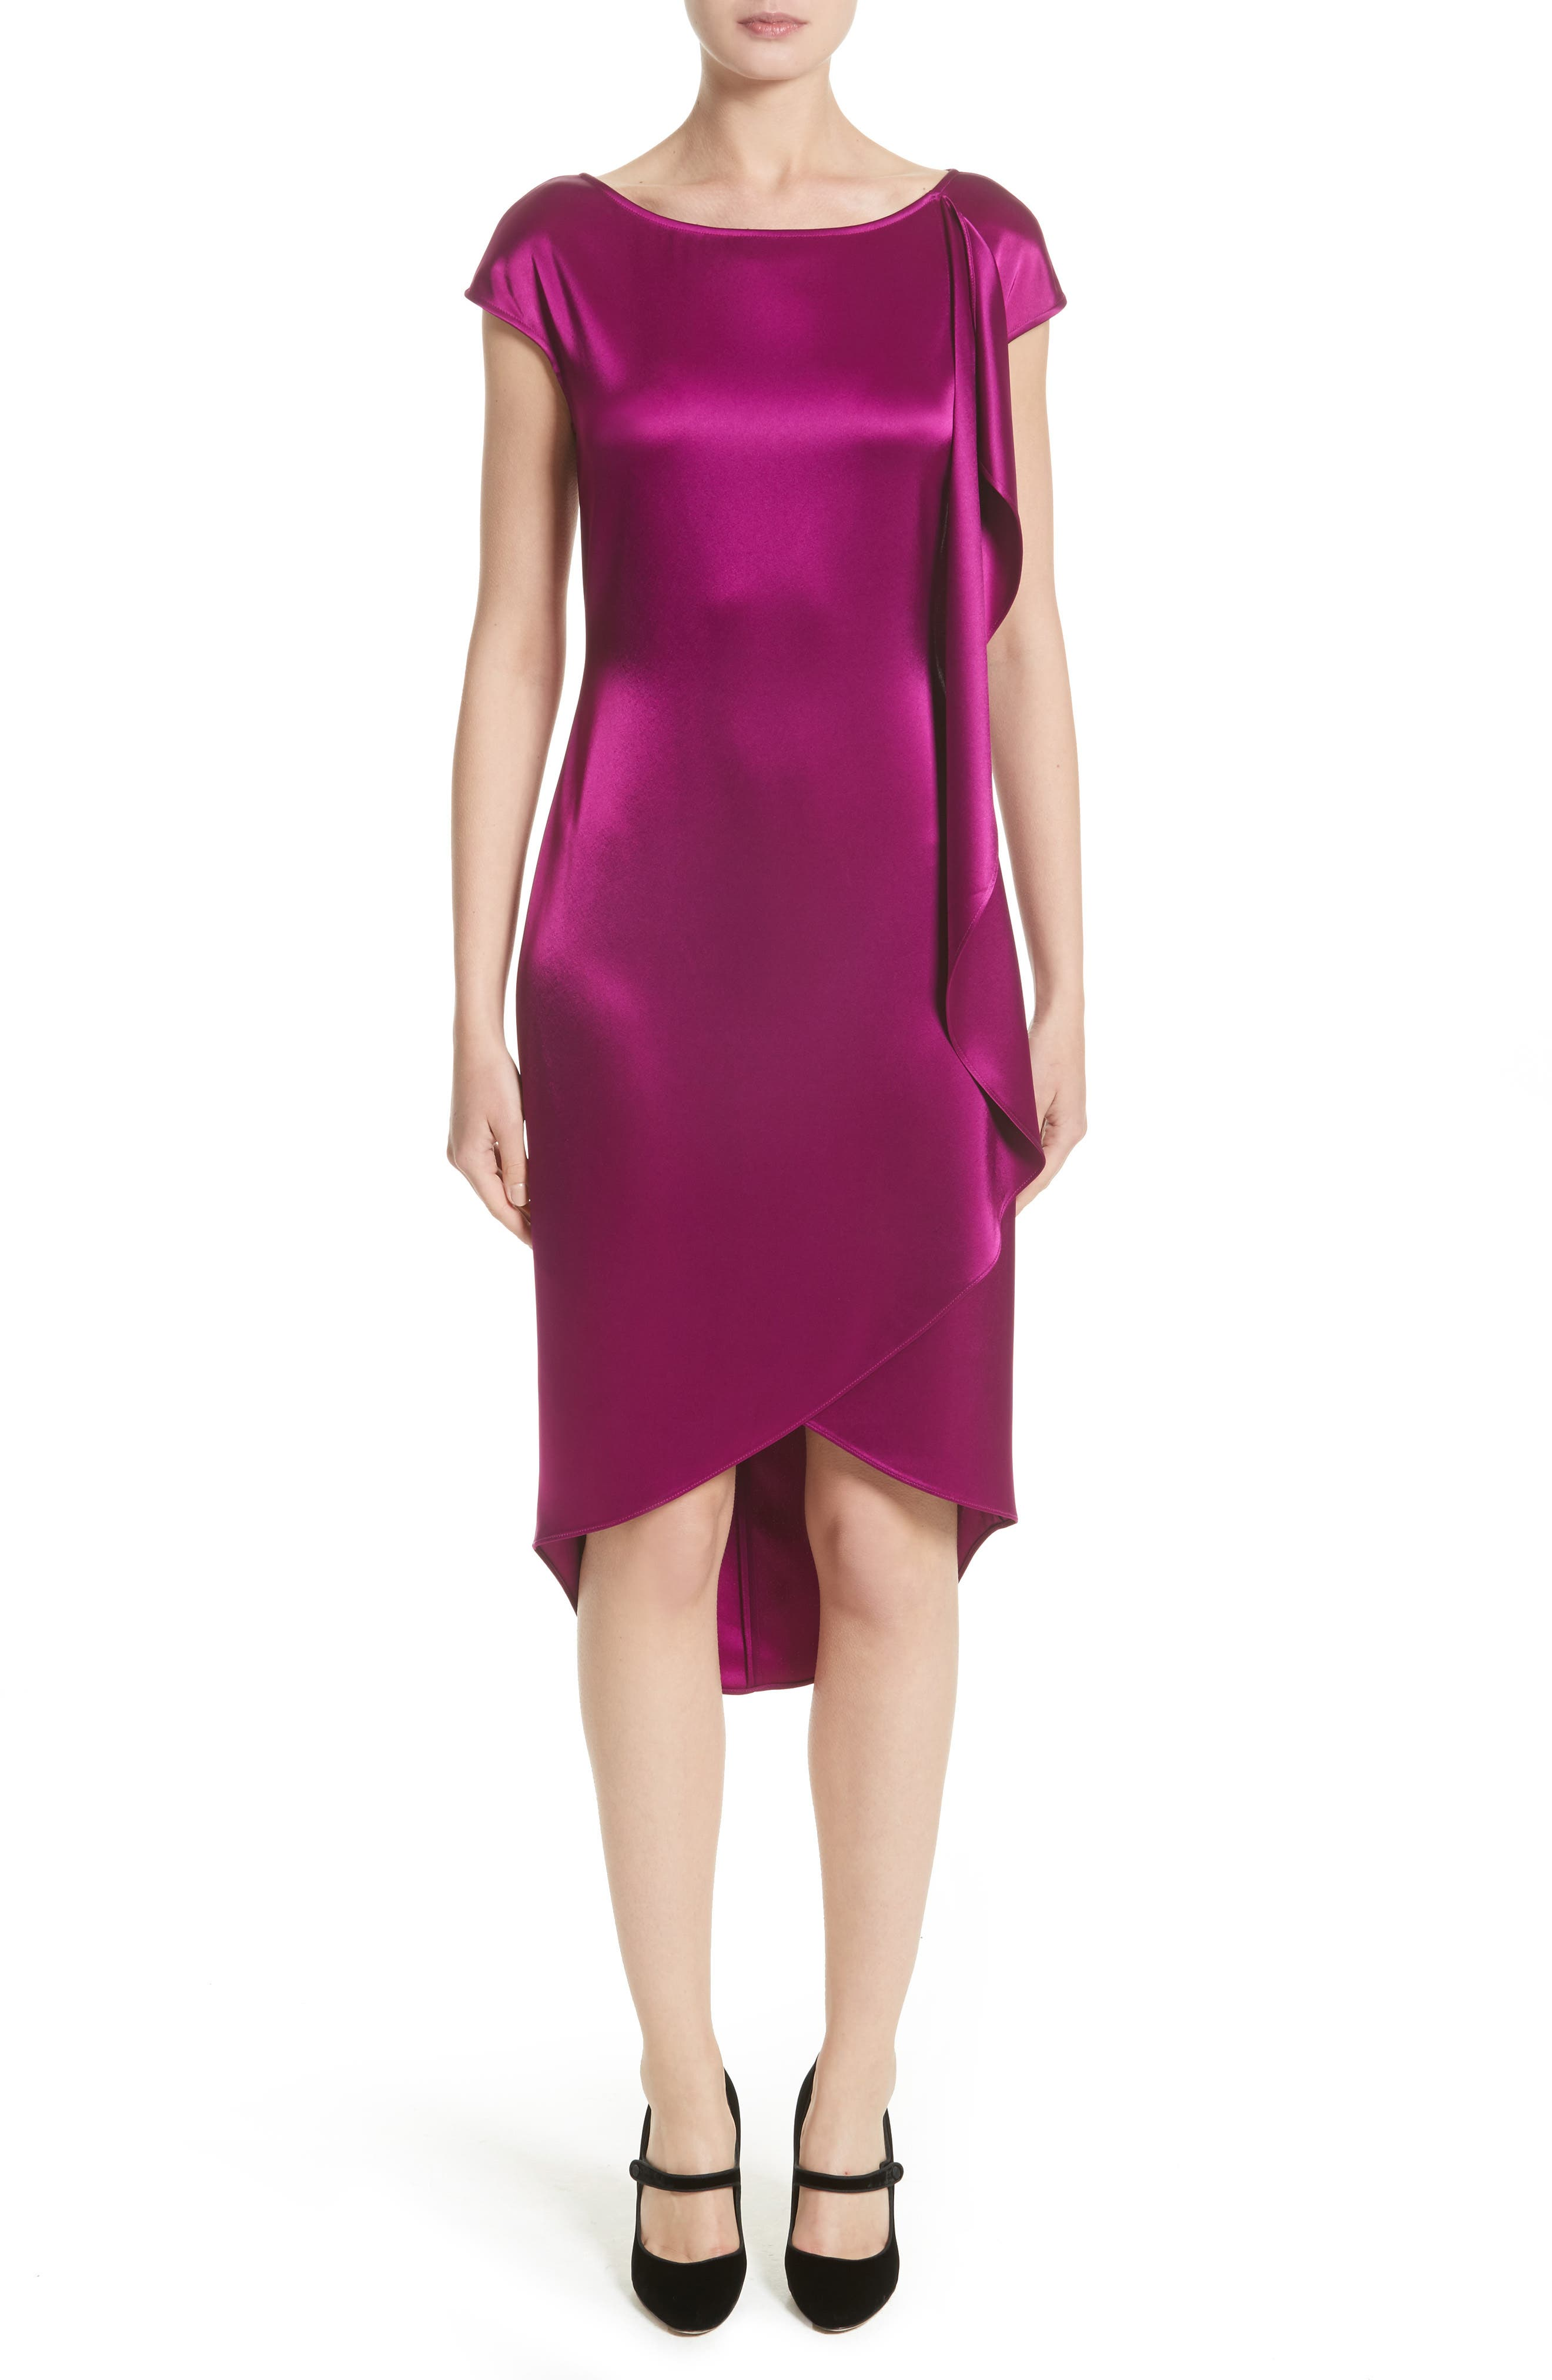 St. John Collection Liquid Satin Dress